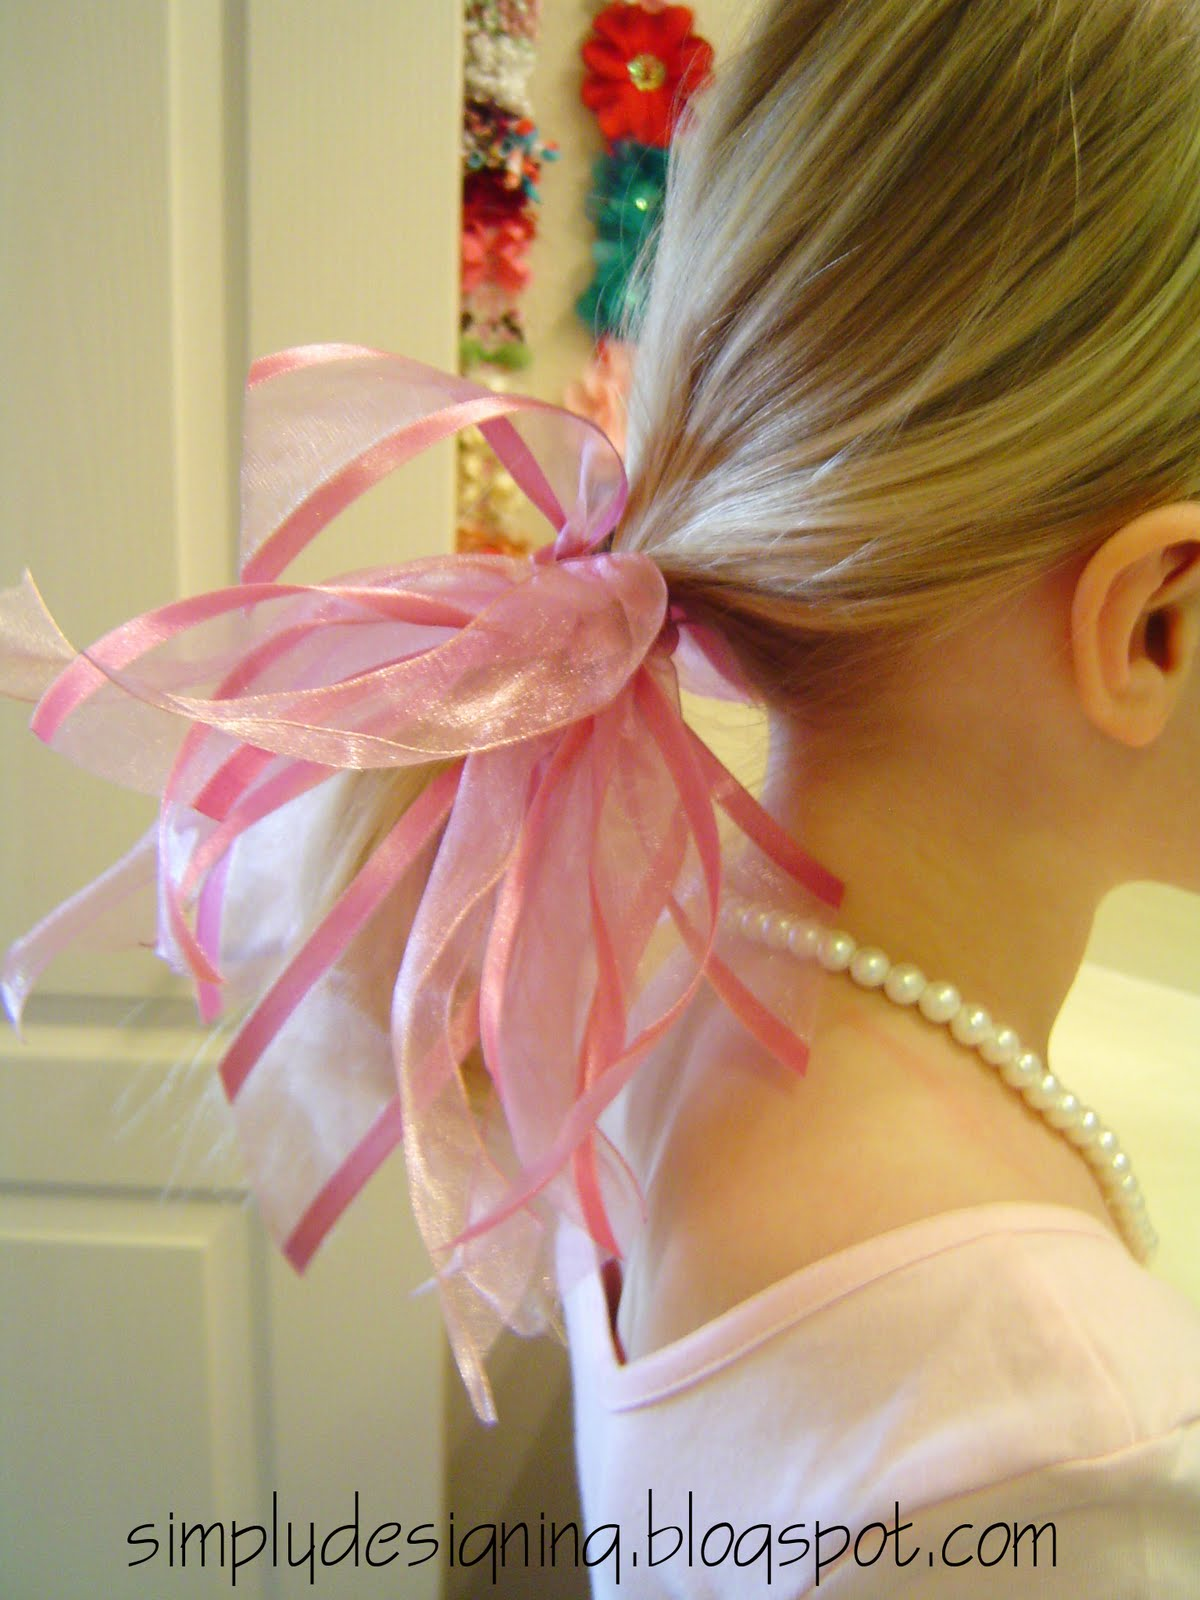 In case you missed it...so simple Fancy Ribbon TuTu and hair accessory  Tutorial 8462e44264b